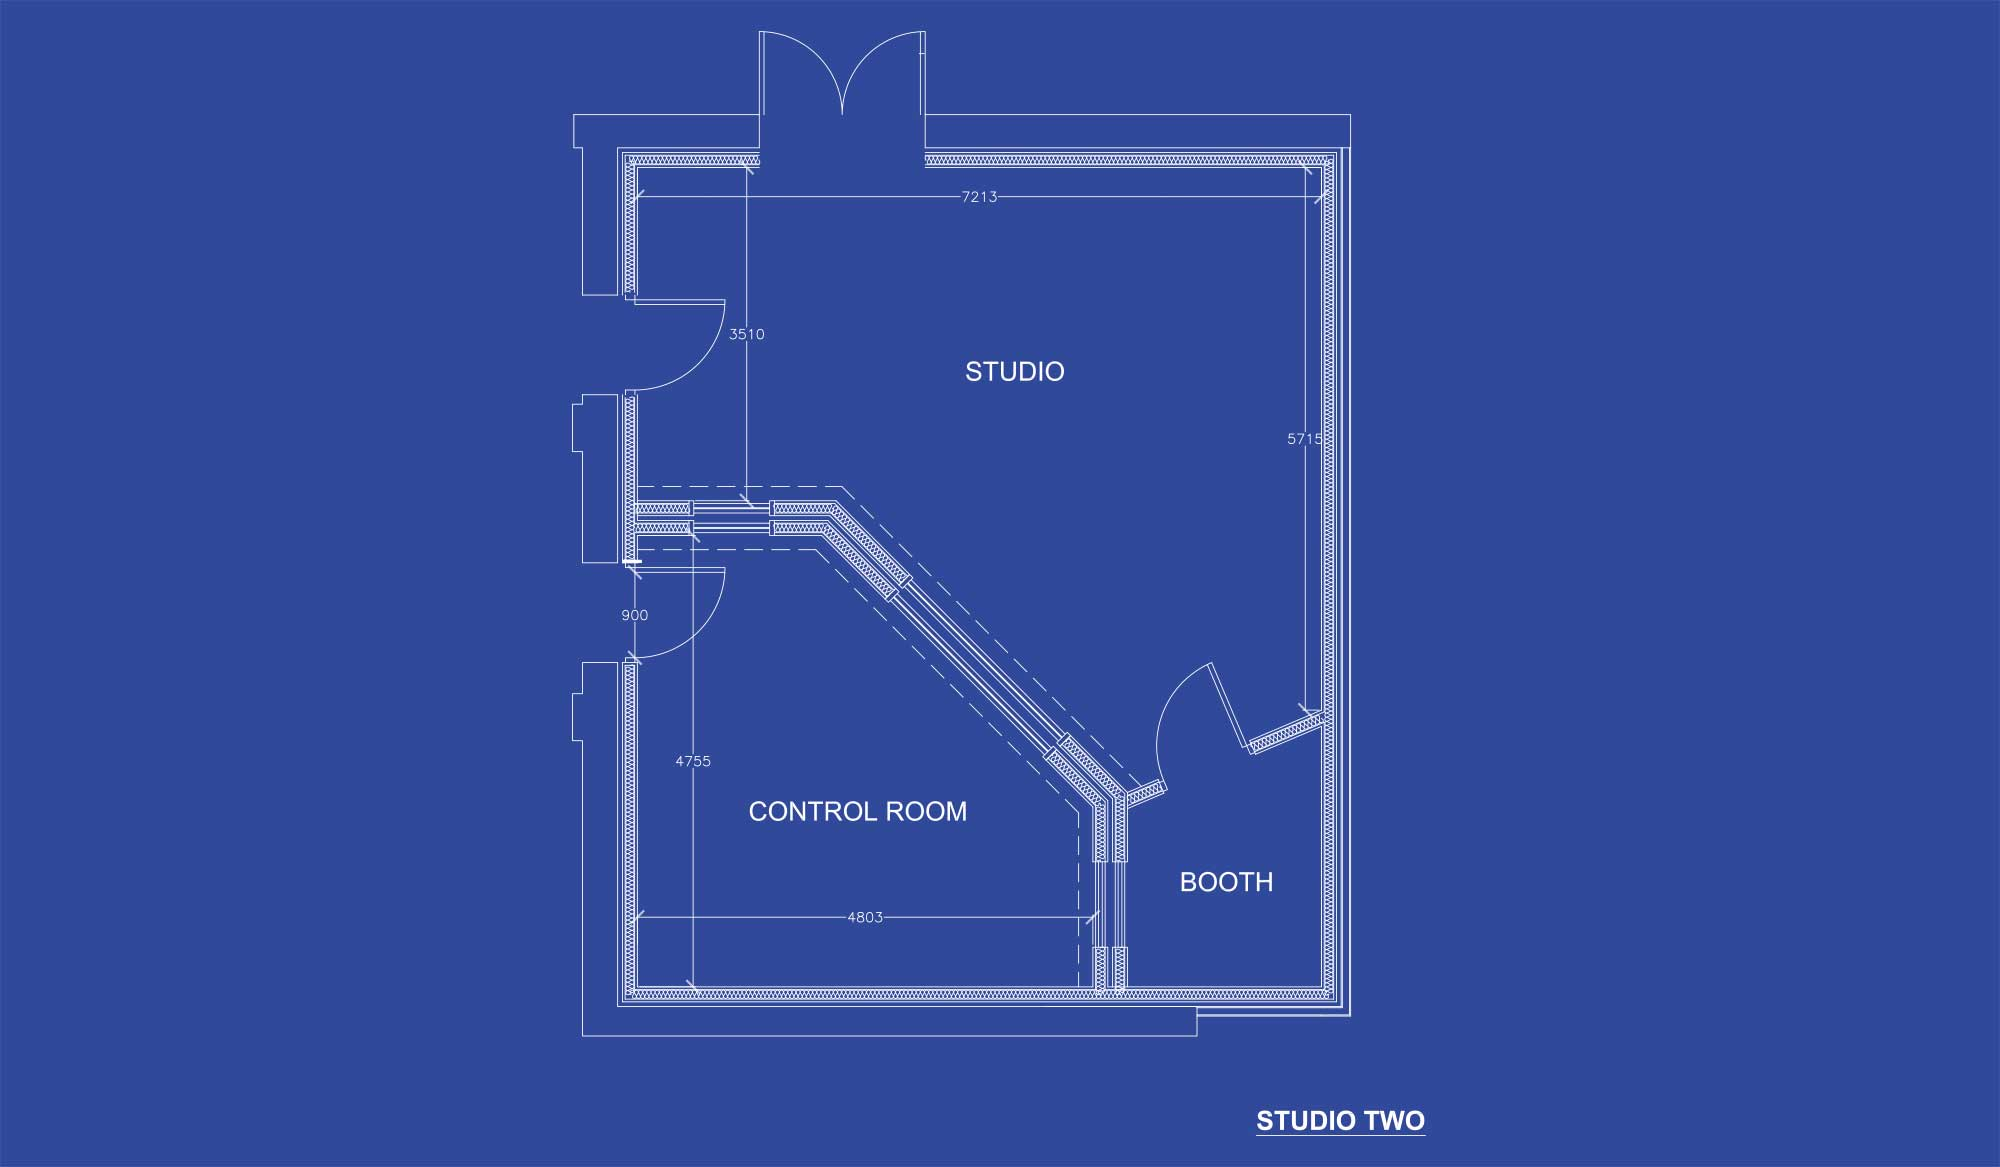 Gorbals Sound Studio 2 Blueprints